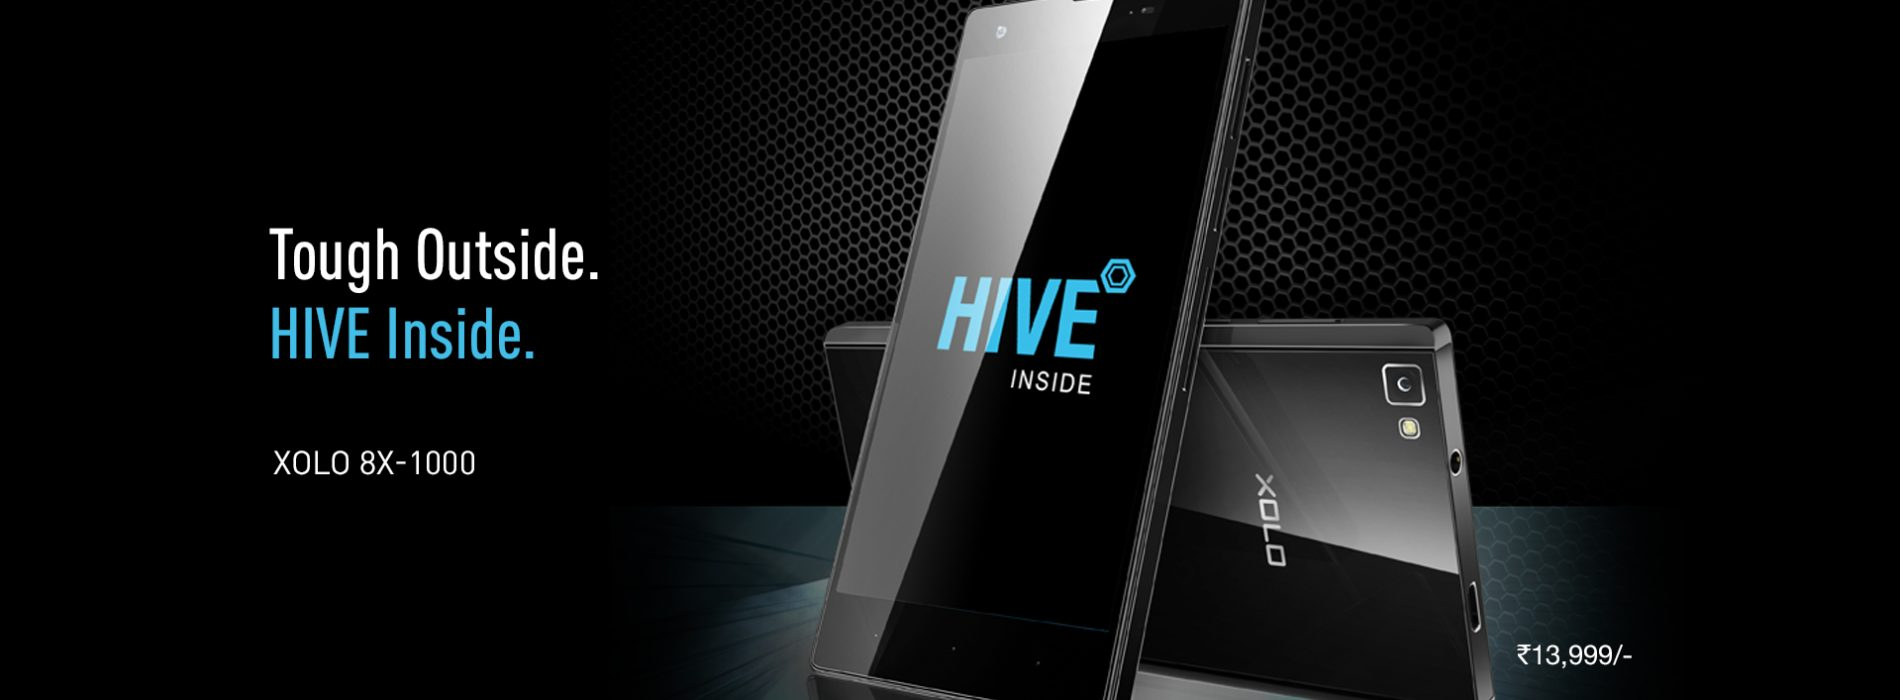 Xolo play 8x-1000 launched with the all new HIVE inside